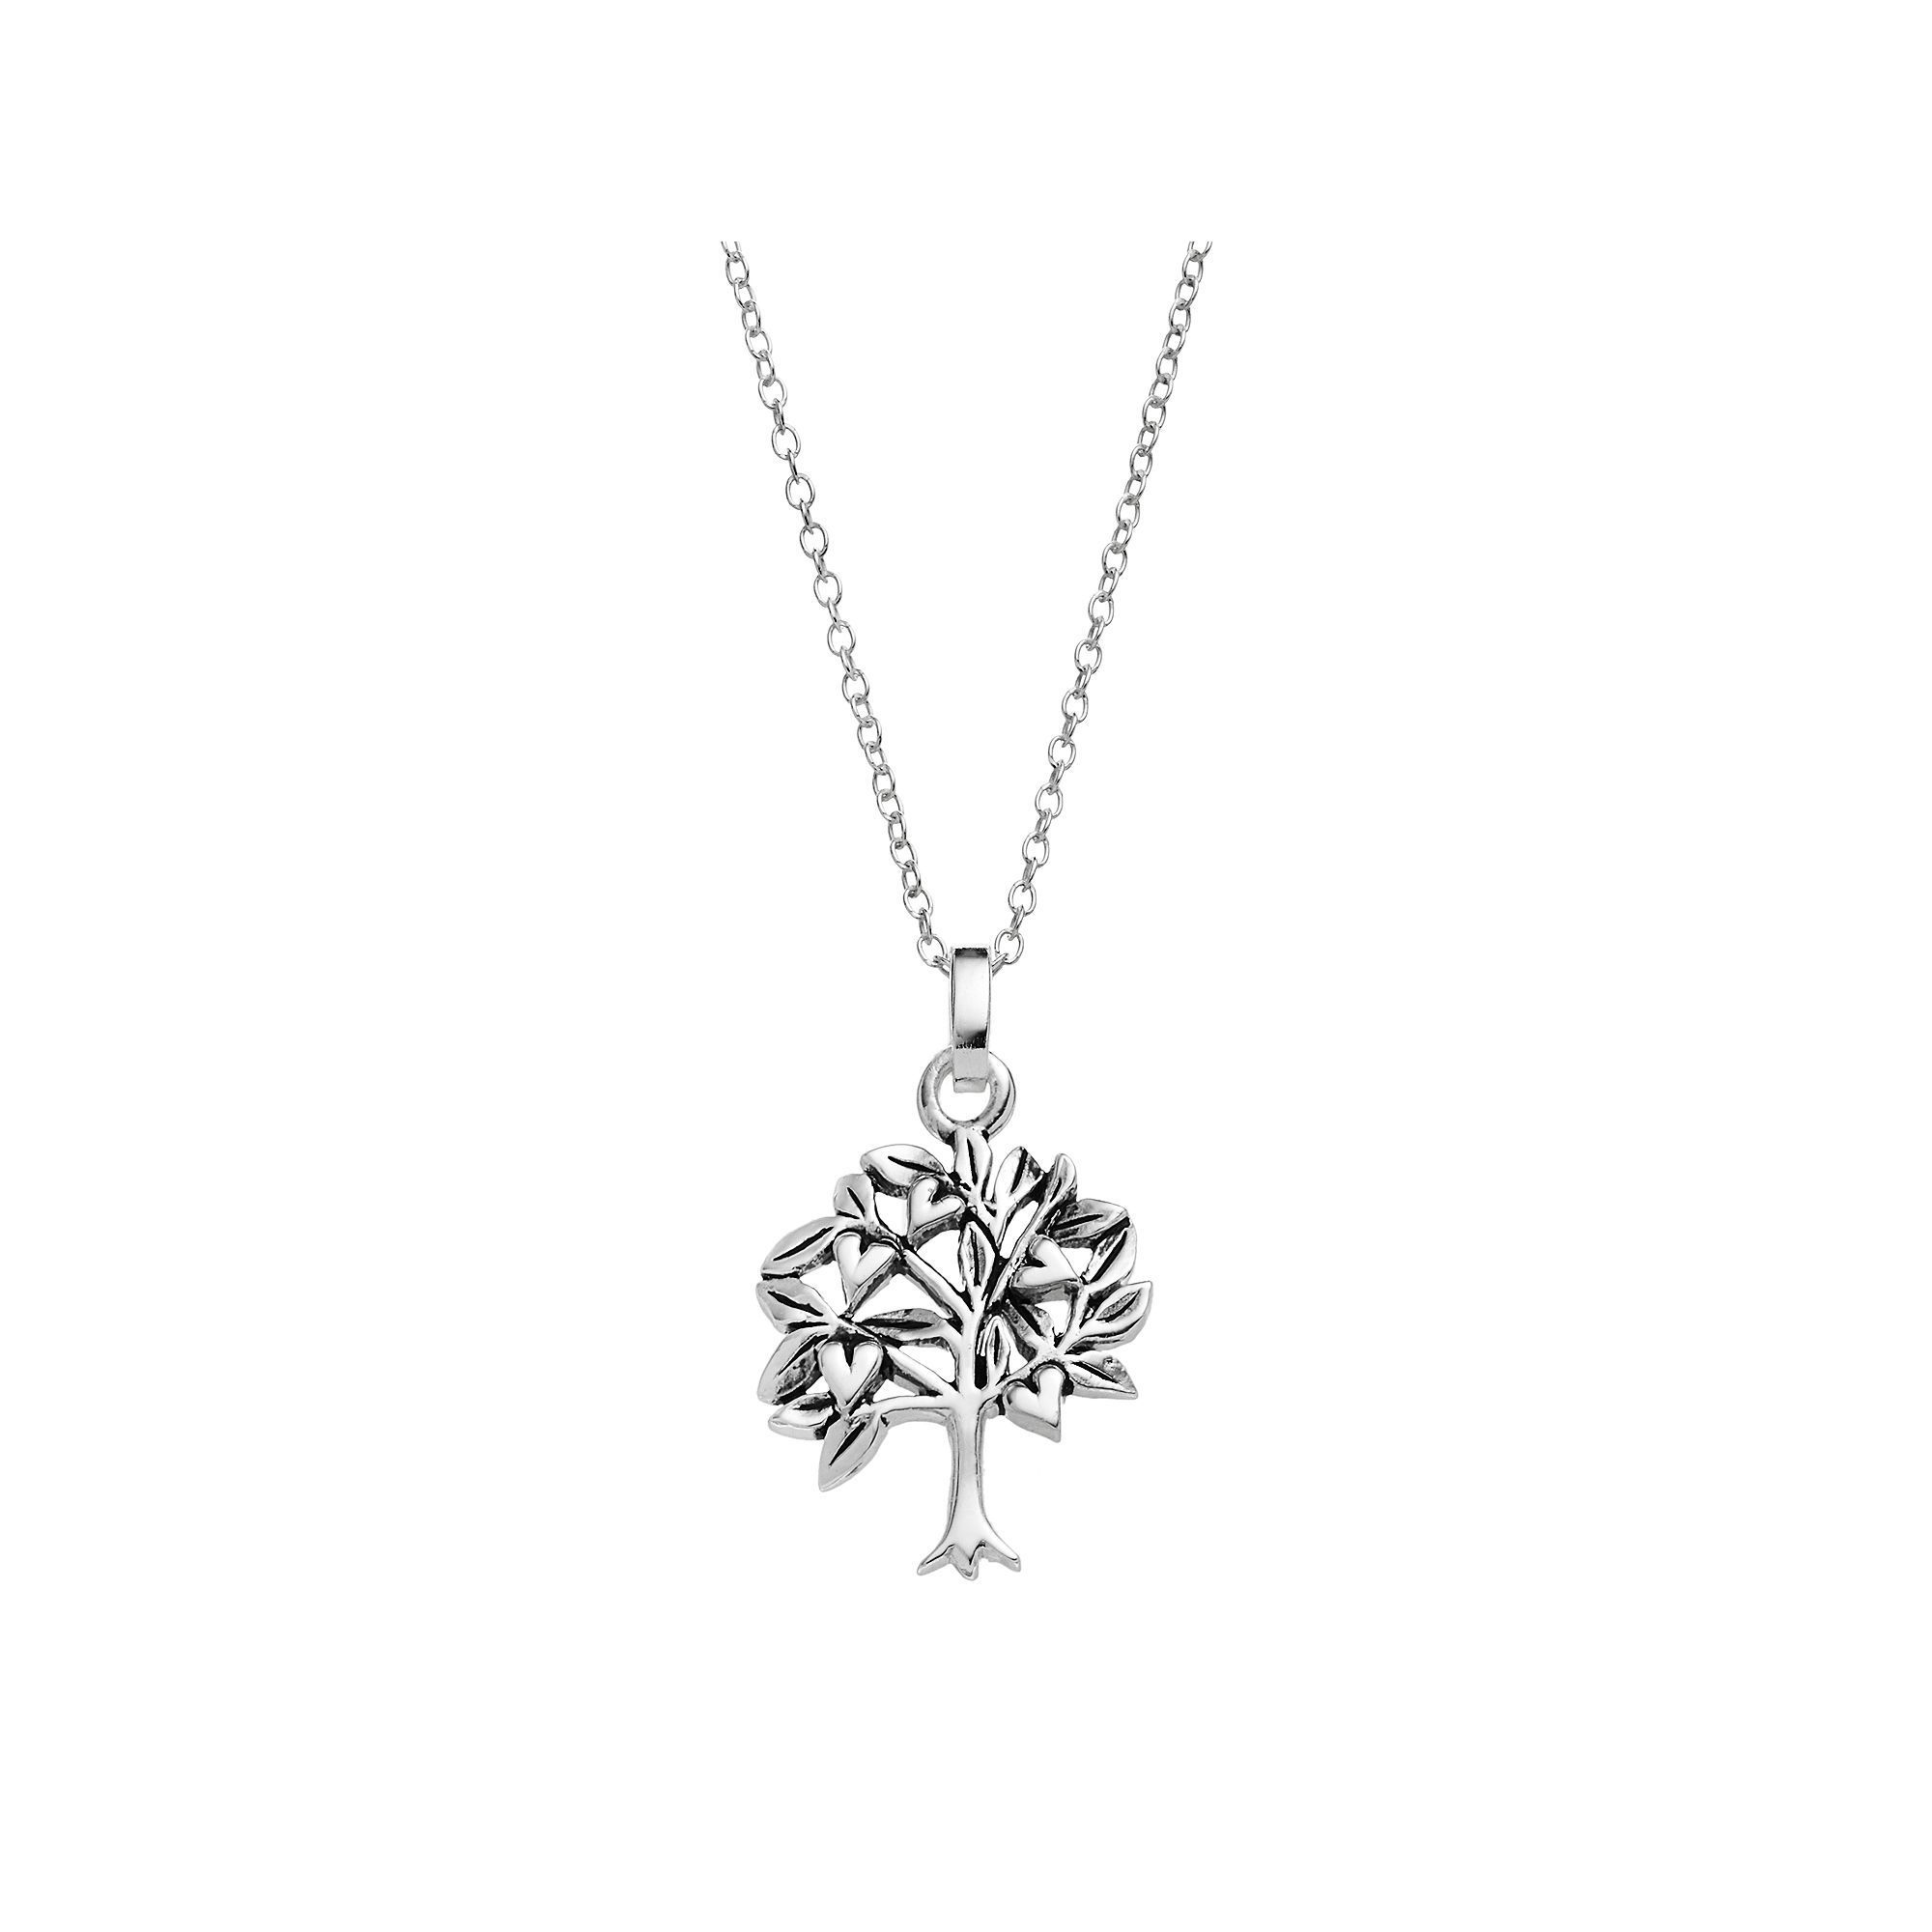 pin cubic set silver zirconia pure women pendant s tree sterling necklace stud earring family